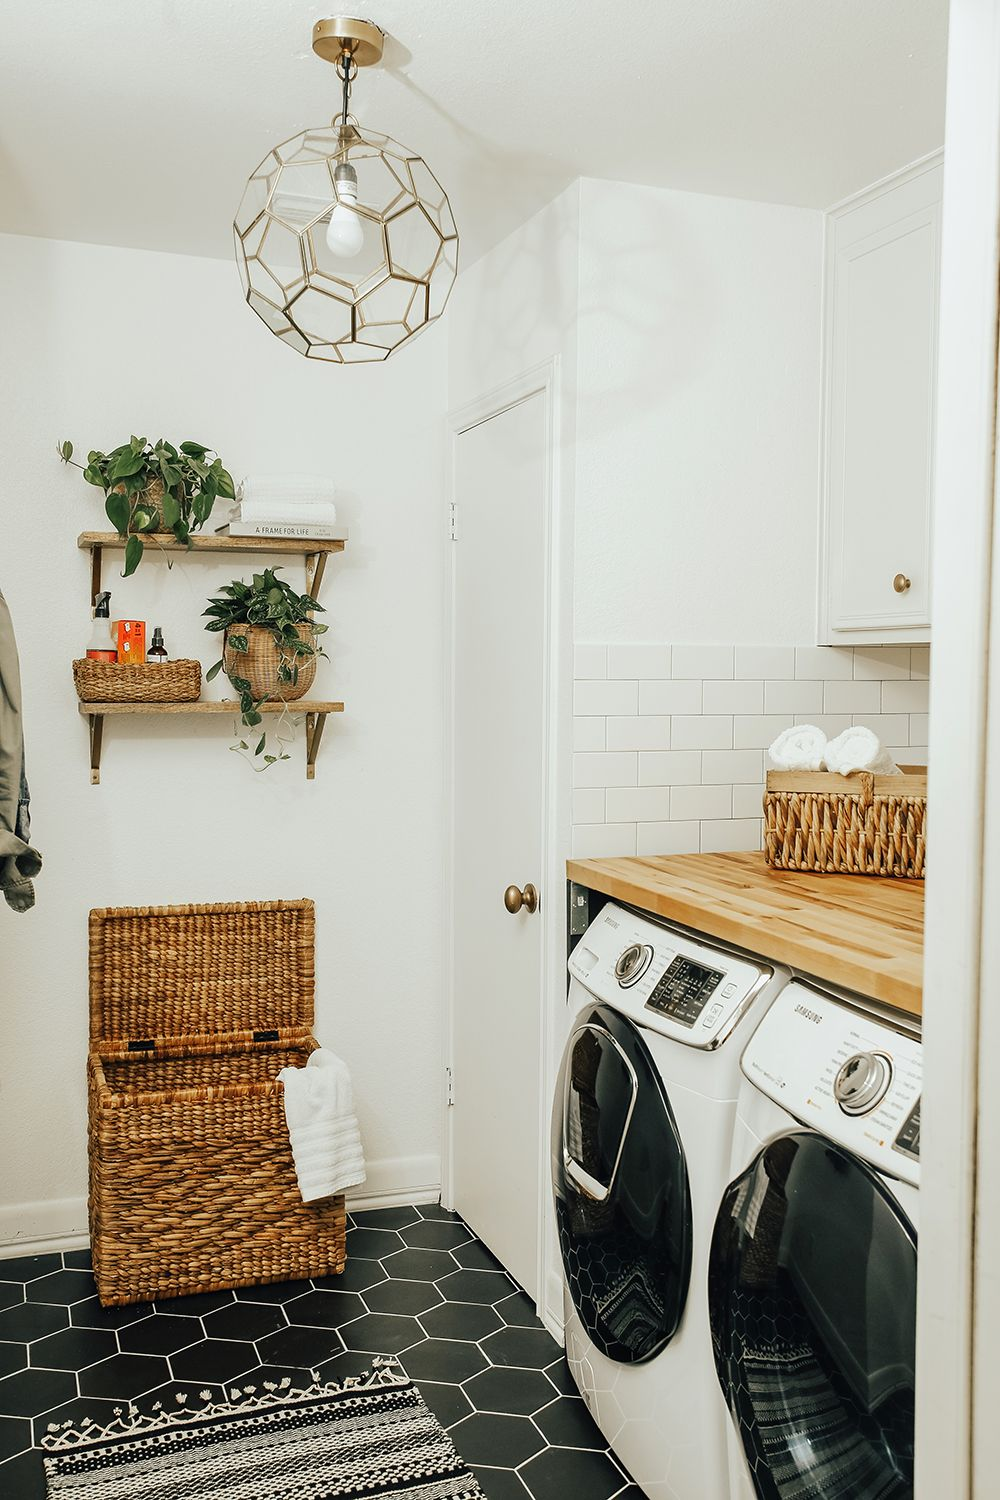 7 Dreamy Laundry Room Before and Afters - The Effortless Chic #laundryrooms